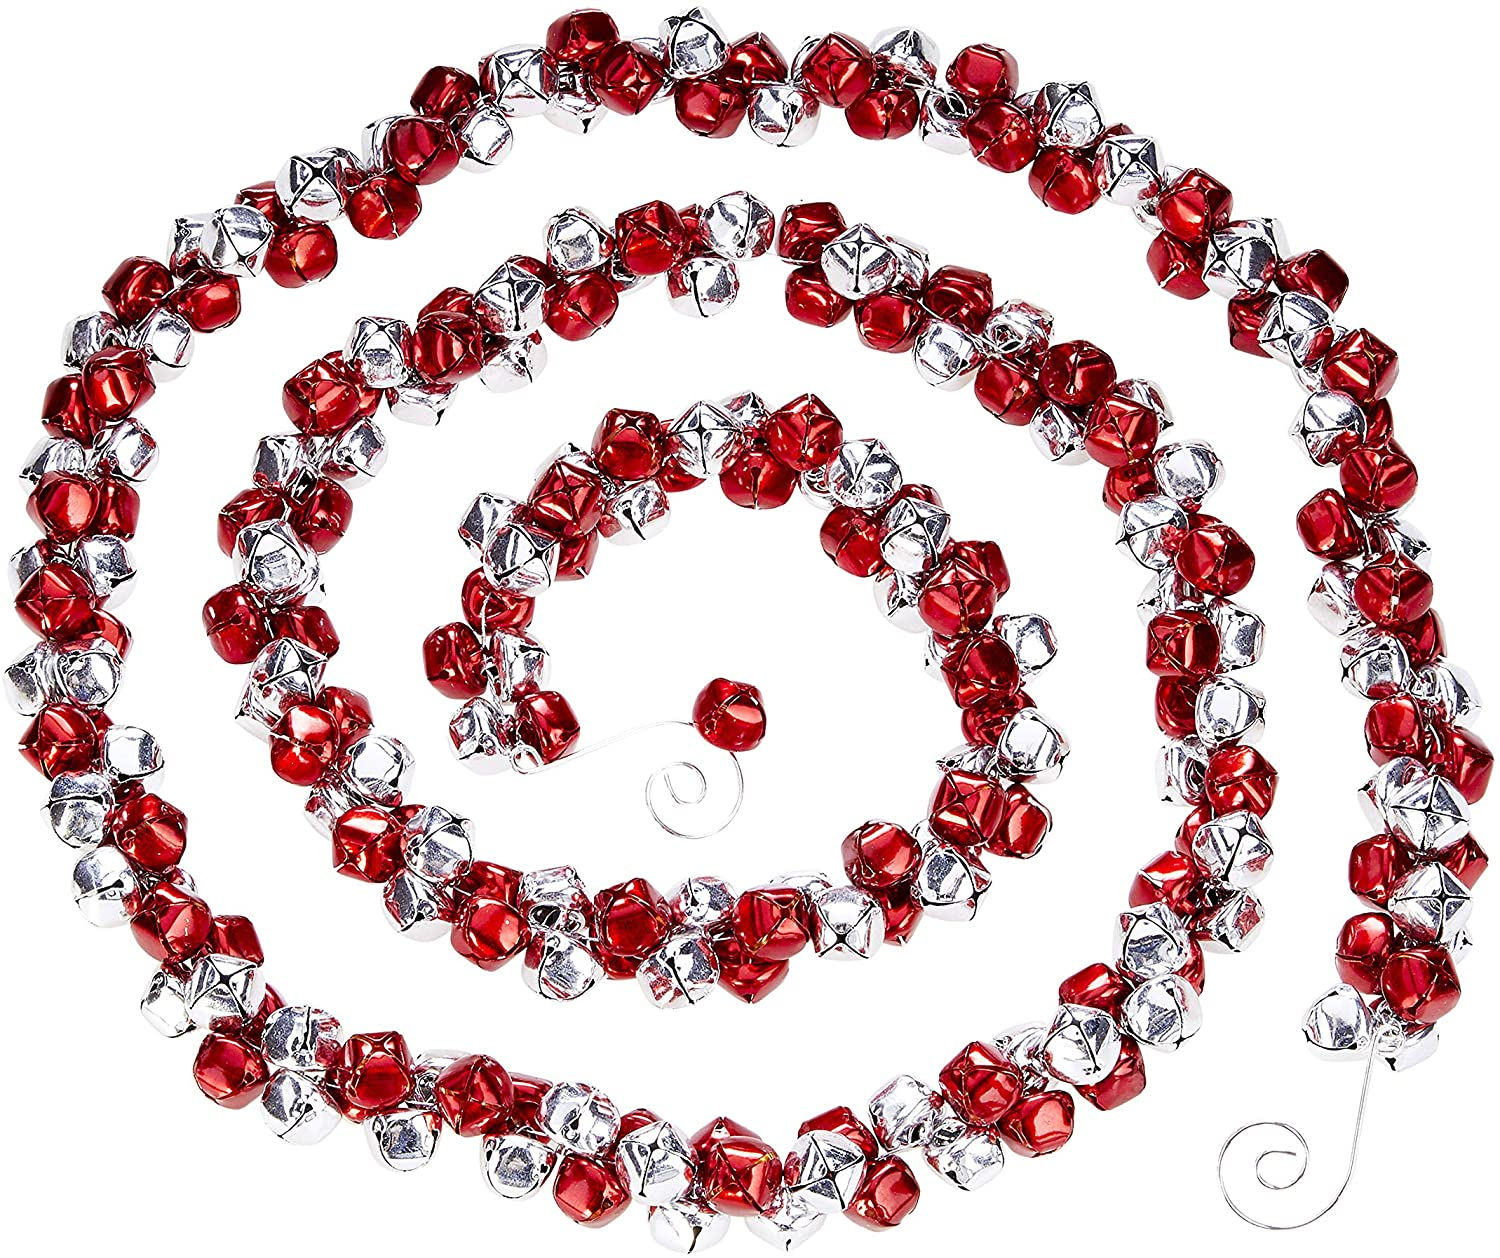 Metal TenWaterloo 56 Inch Jingle Bell Christmas Garland in Red and Silver